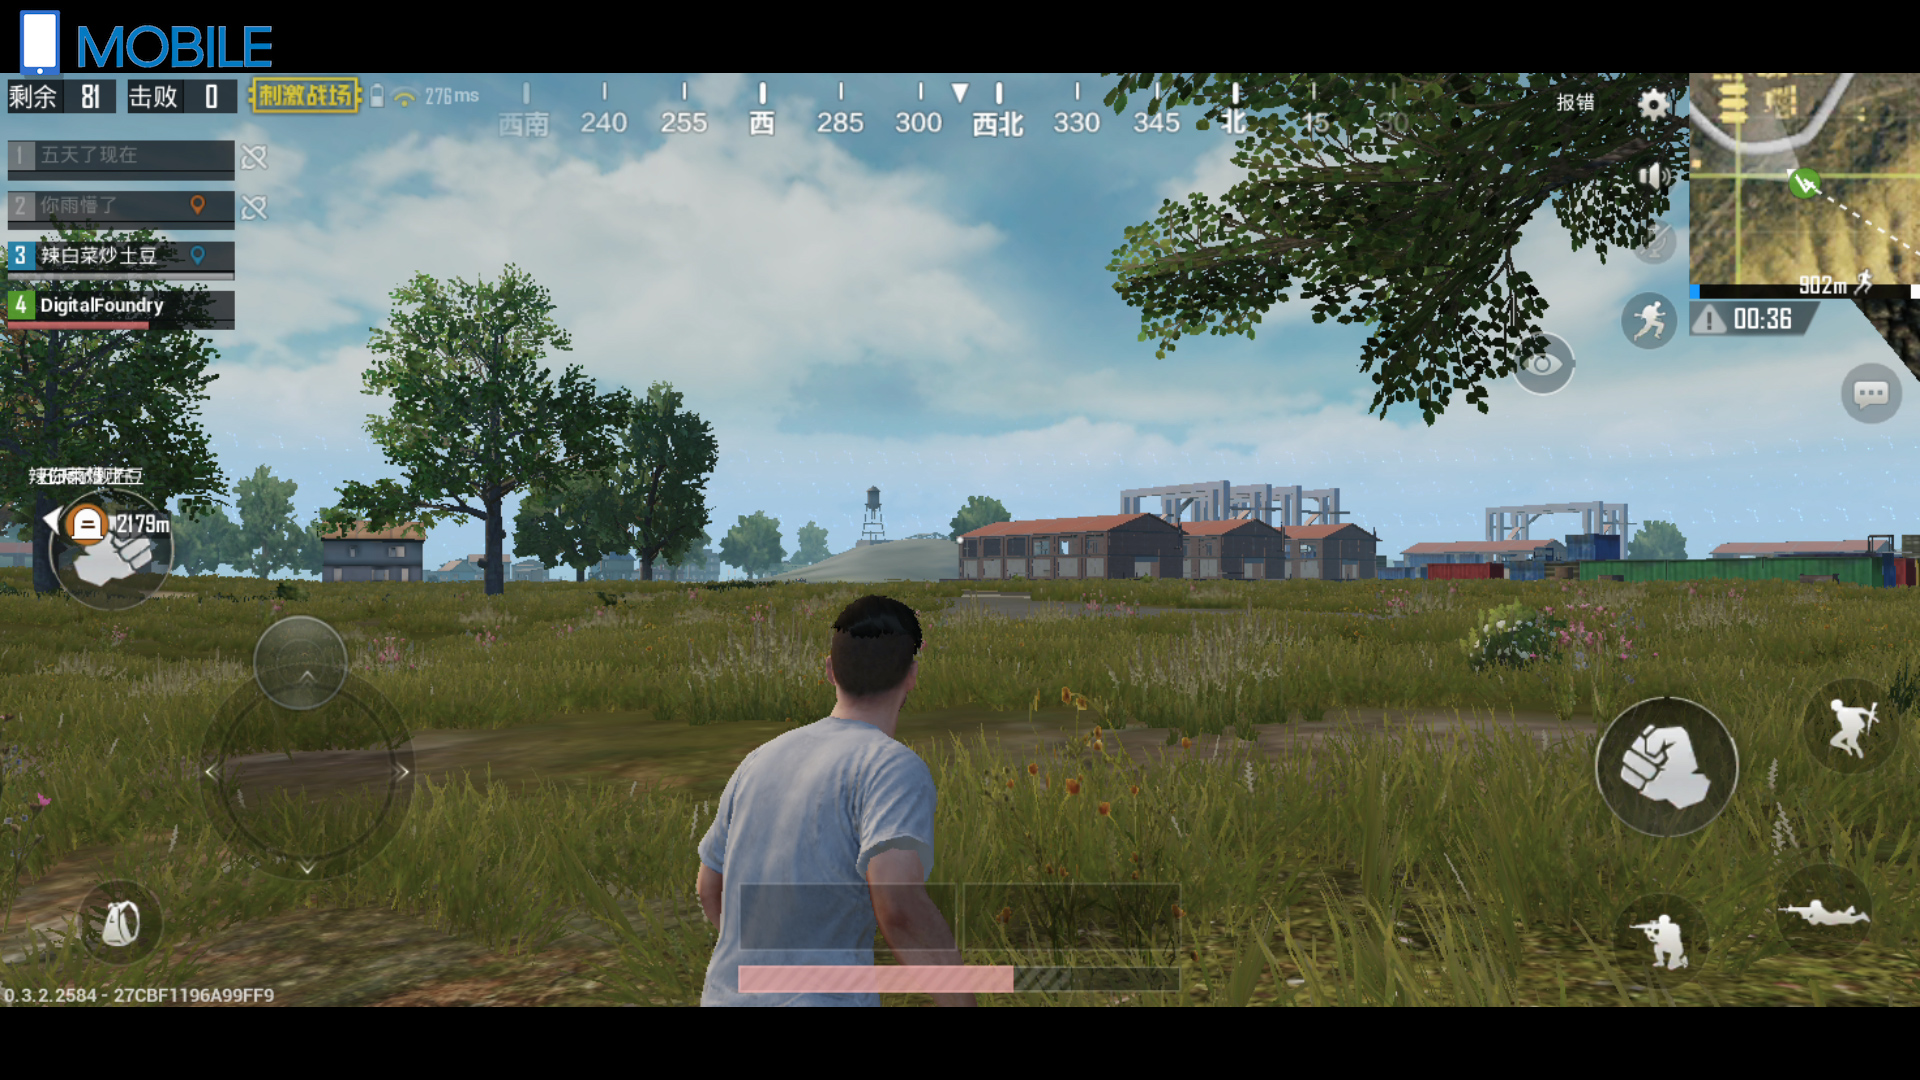 Pubg Mobile Analysed Top End Smartphones Compared With Pc - mobile pc